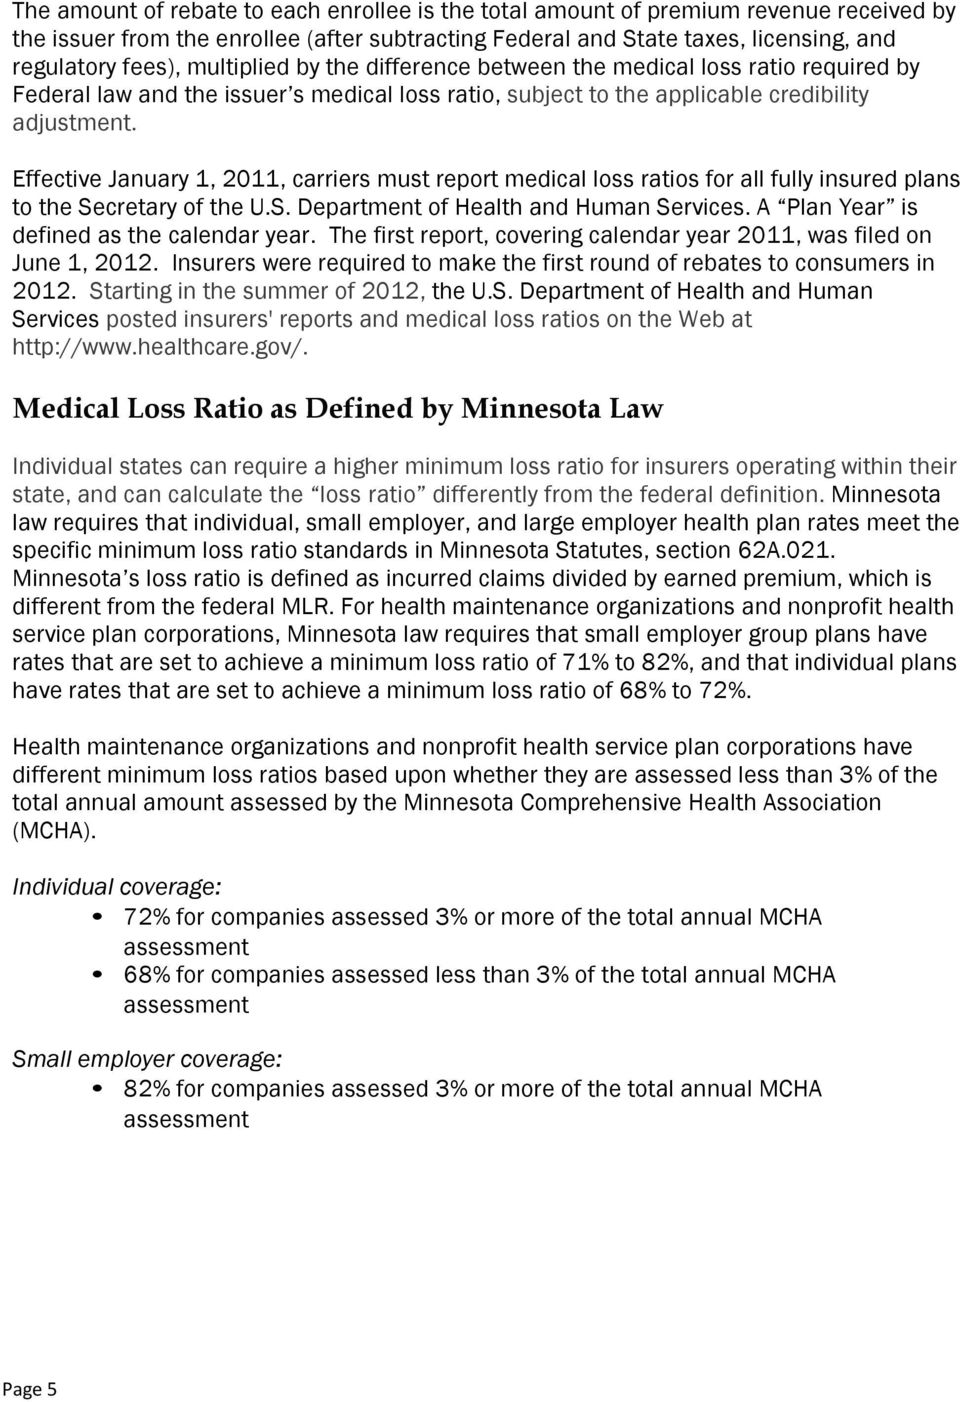 Effective January 1, 2011, carriers must report medical loss ratios for all fully insured plans to the Secretary of the U.S. Department of Health and Human Services.